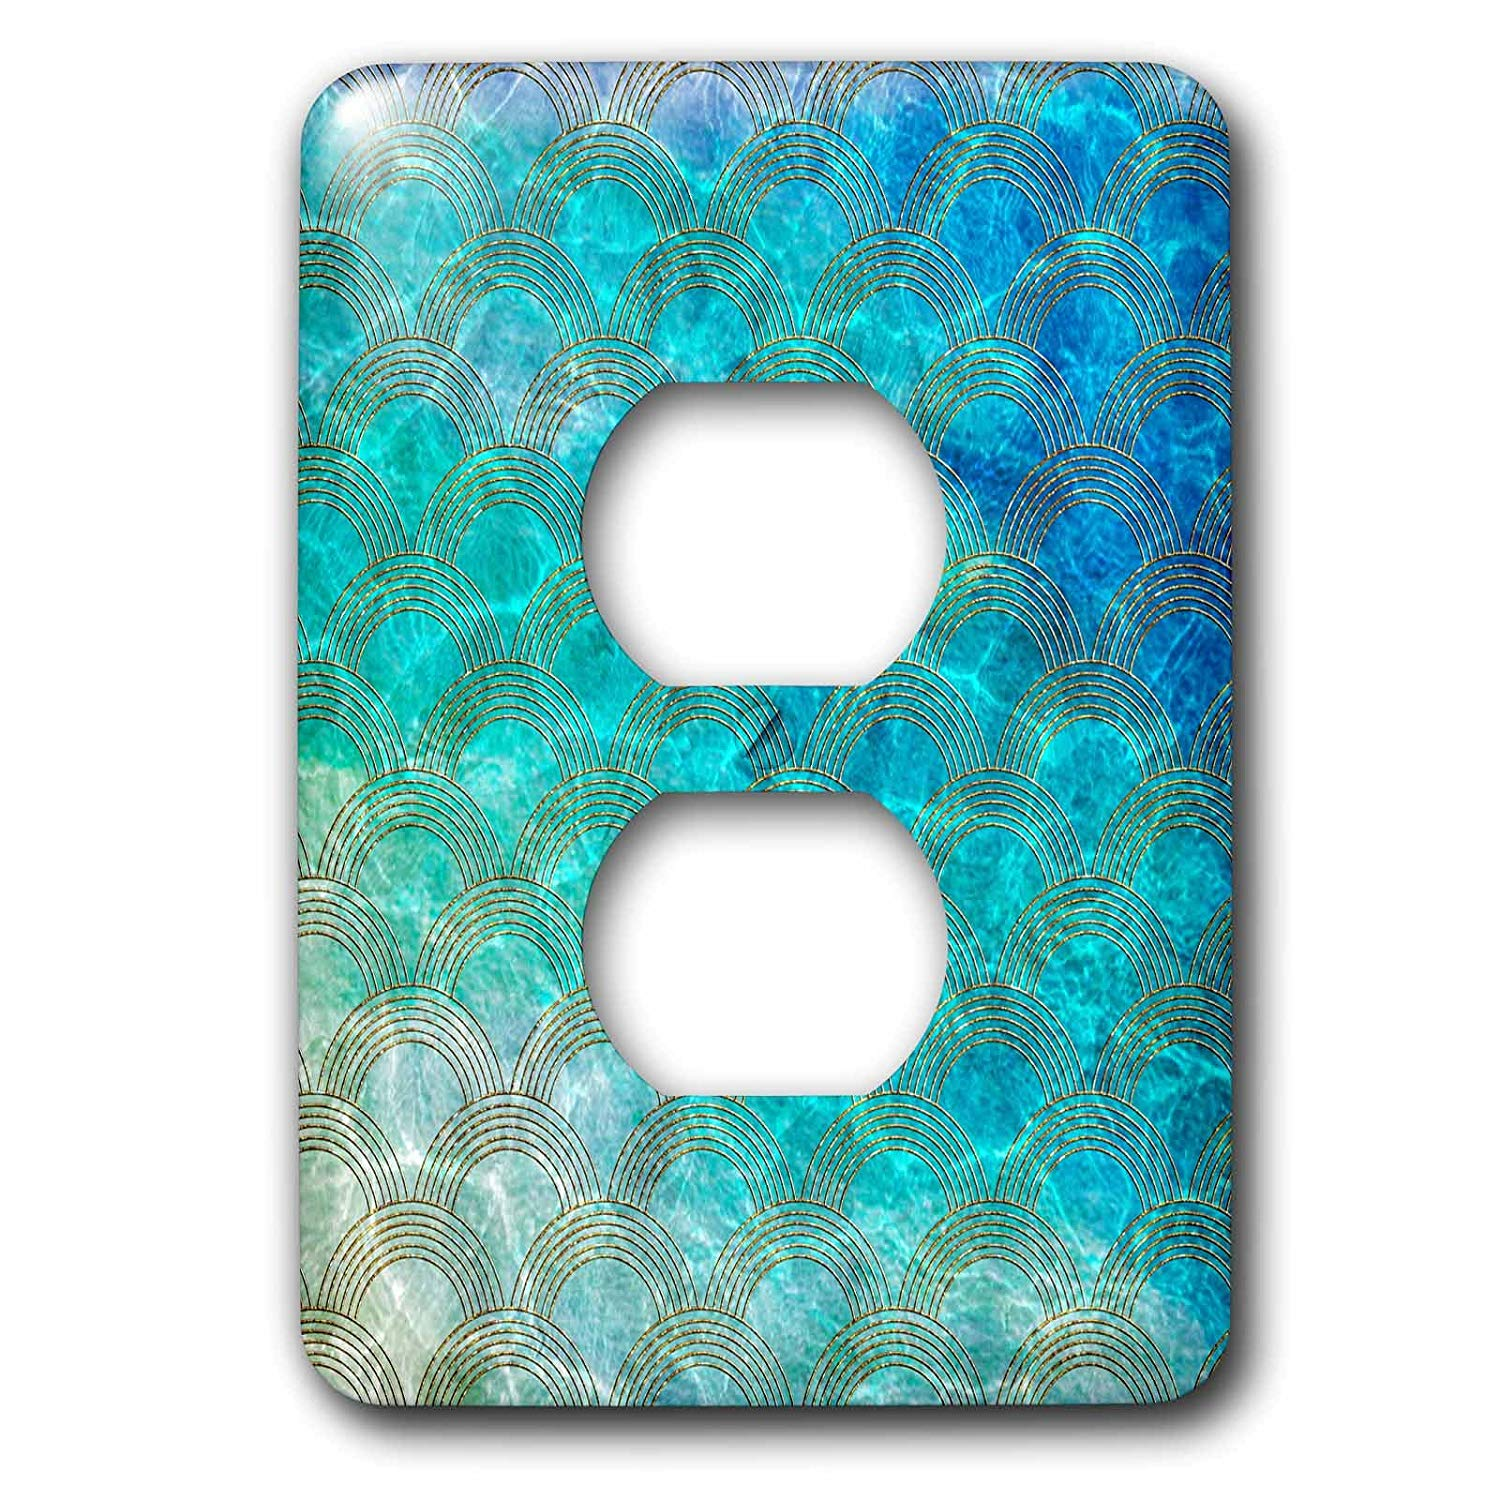 3dRose (lsp_266973_6) 2 Plug Outlet Cover (6) 2 Shiny Teal Ocean Mermaid Scales Glitter Effect Art Print